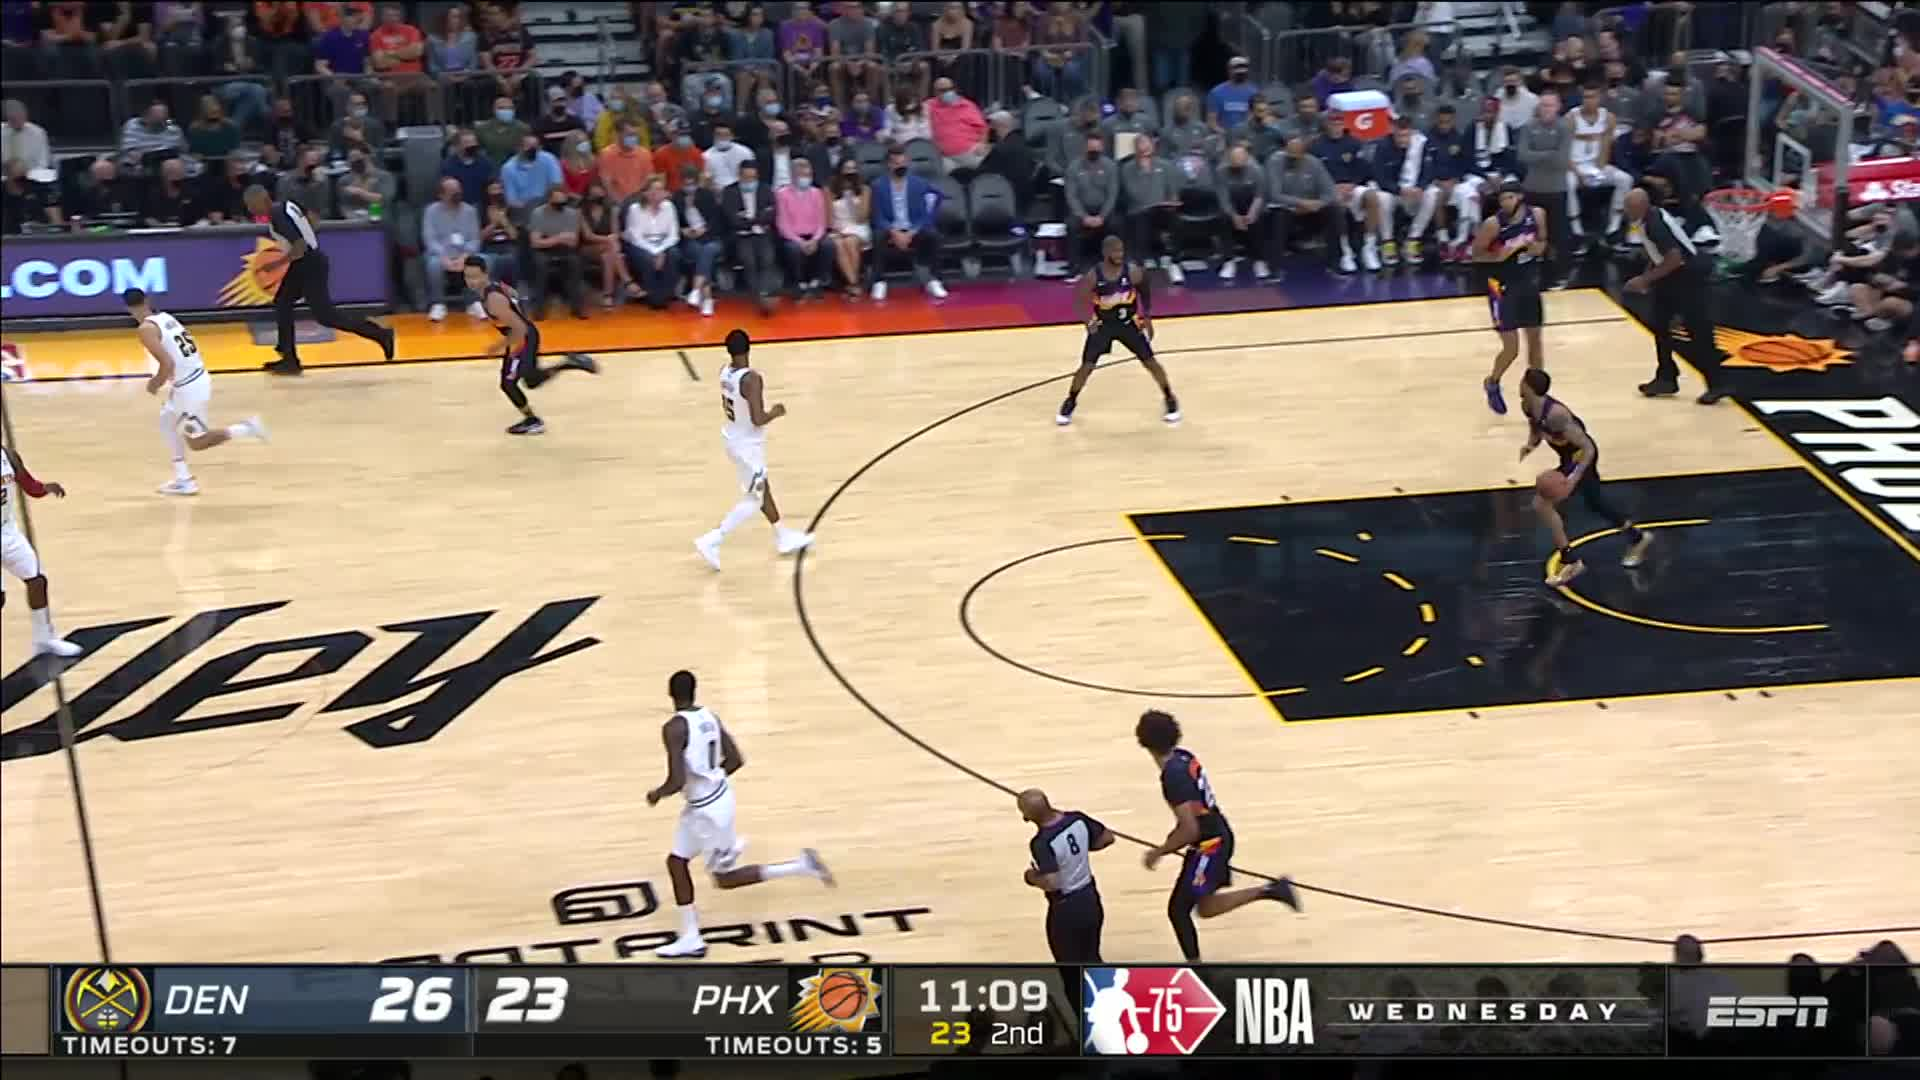 Assist by Chris Paul to JaVale McGee who floats it in